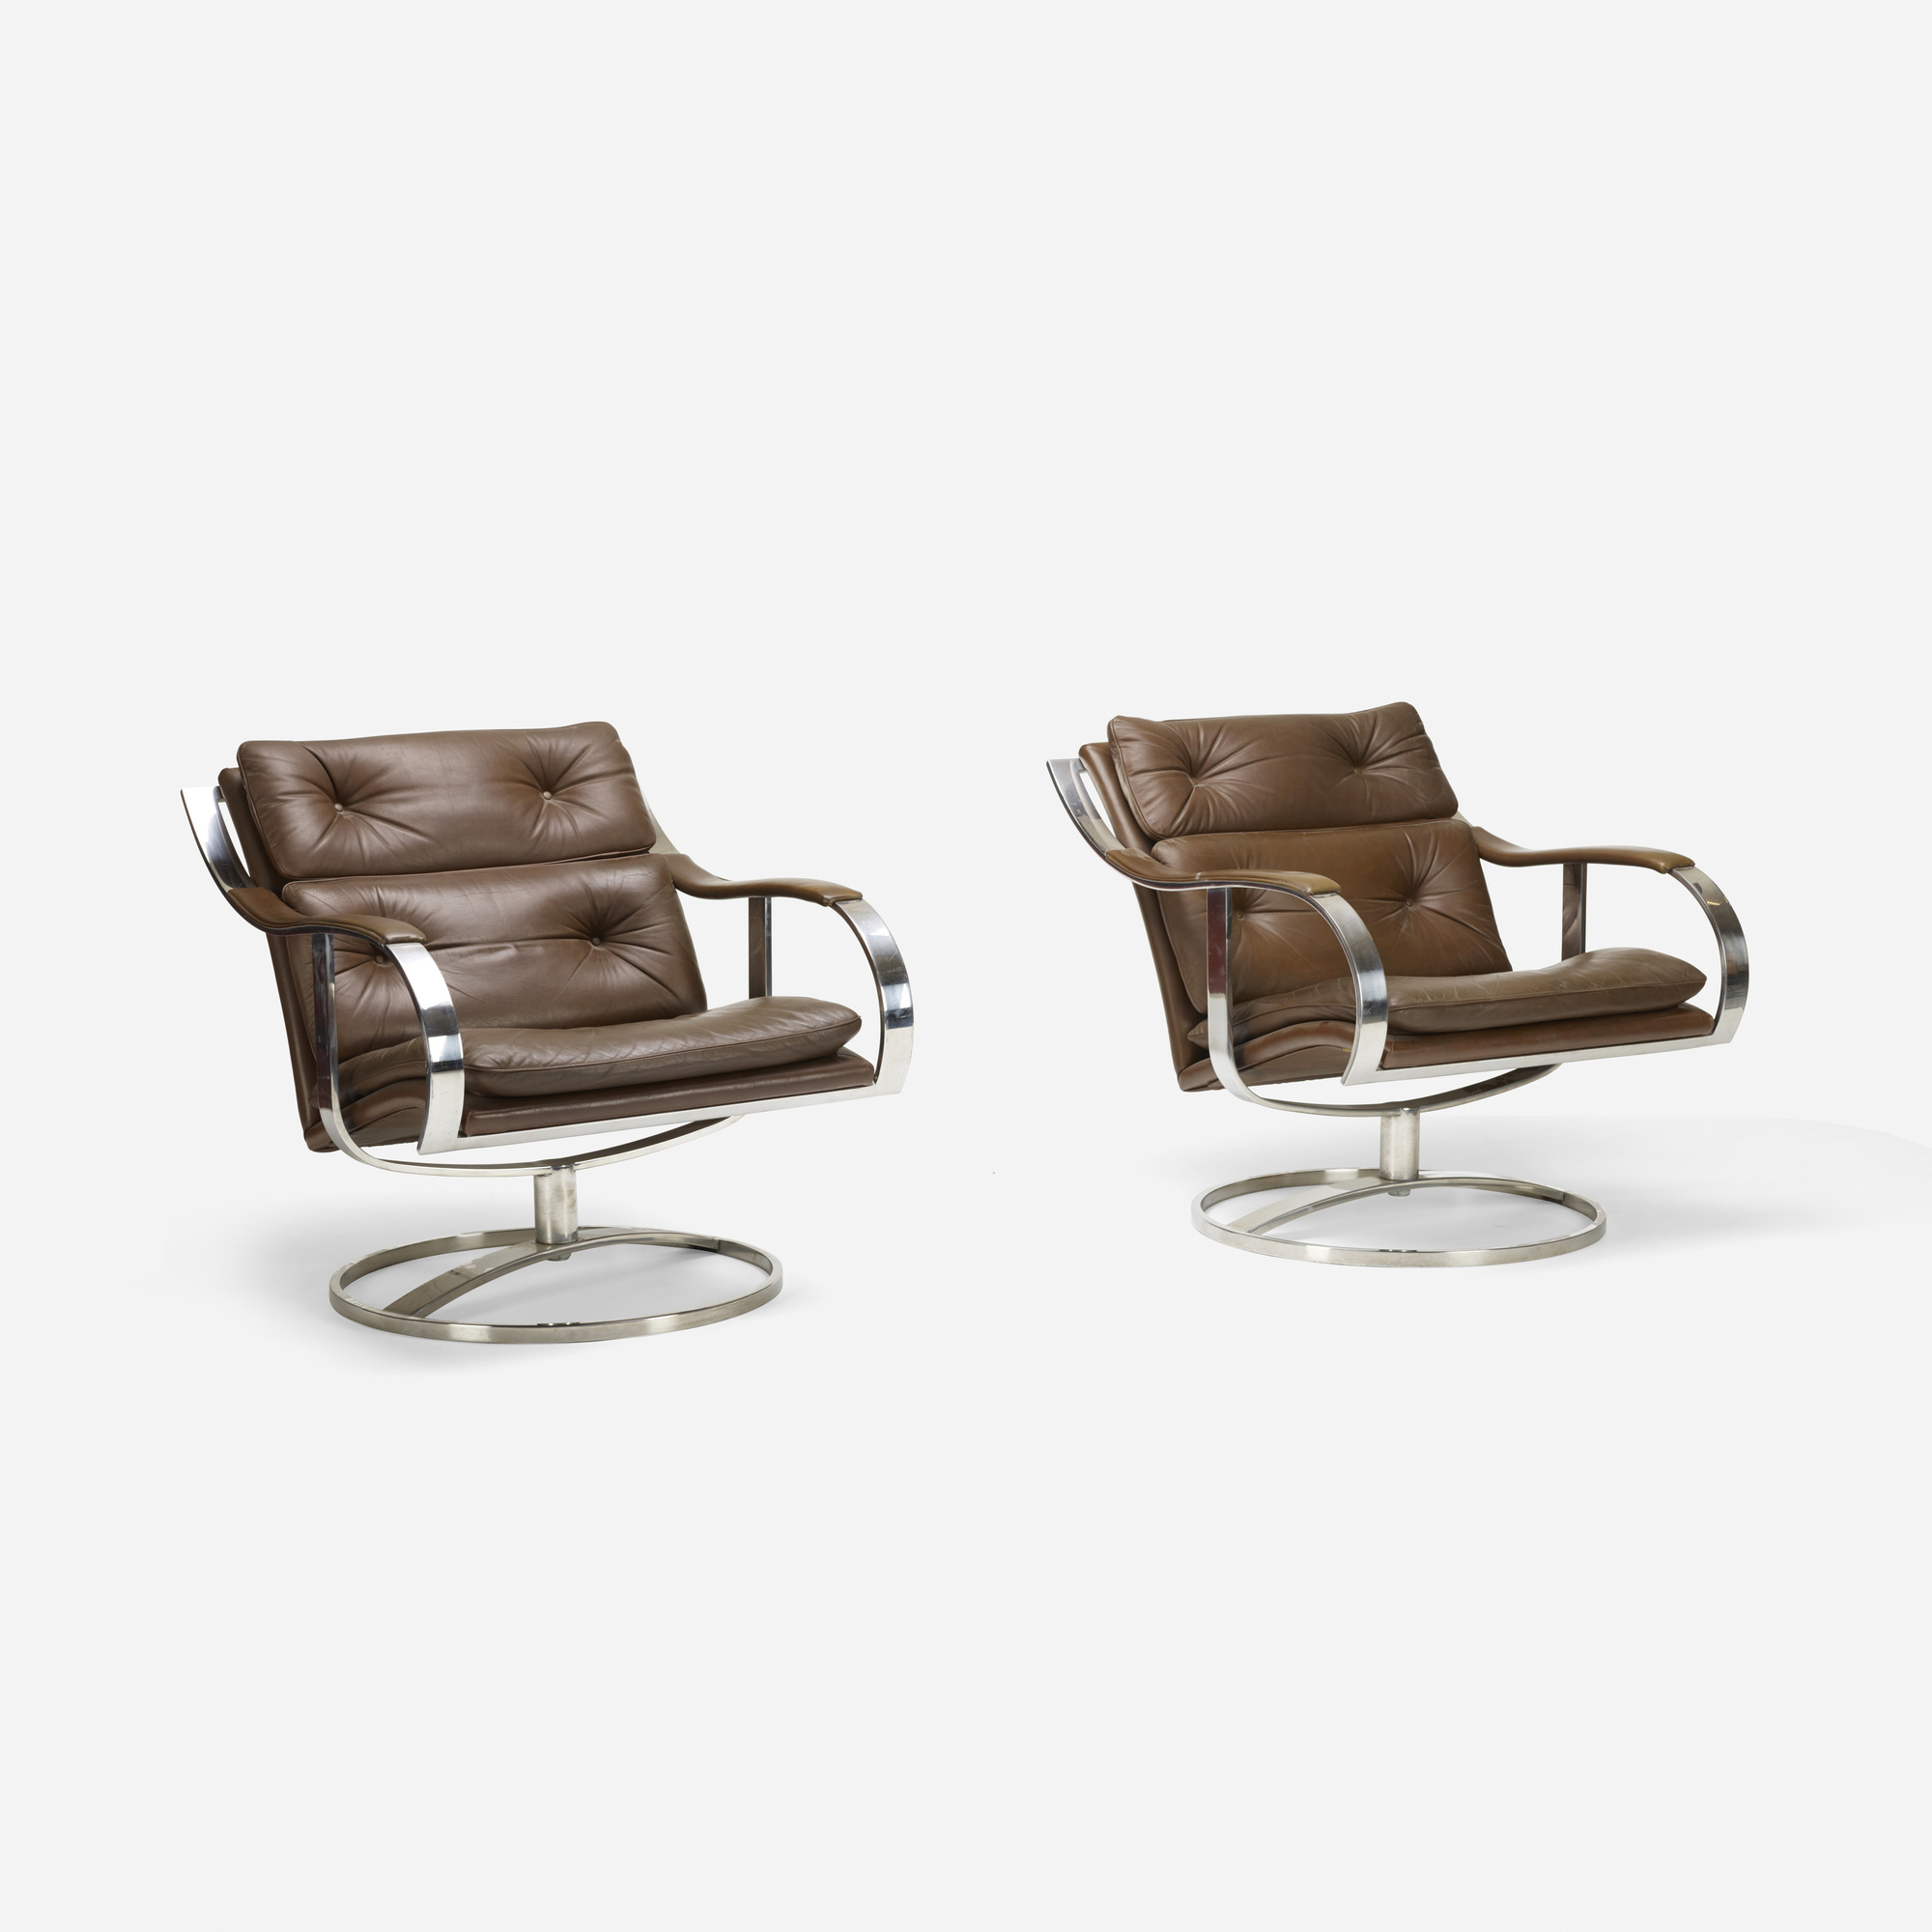 334: Gardner Leaver / lounge chairs, pair (2 of 2)